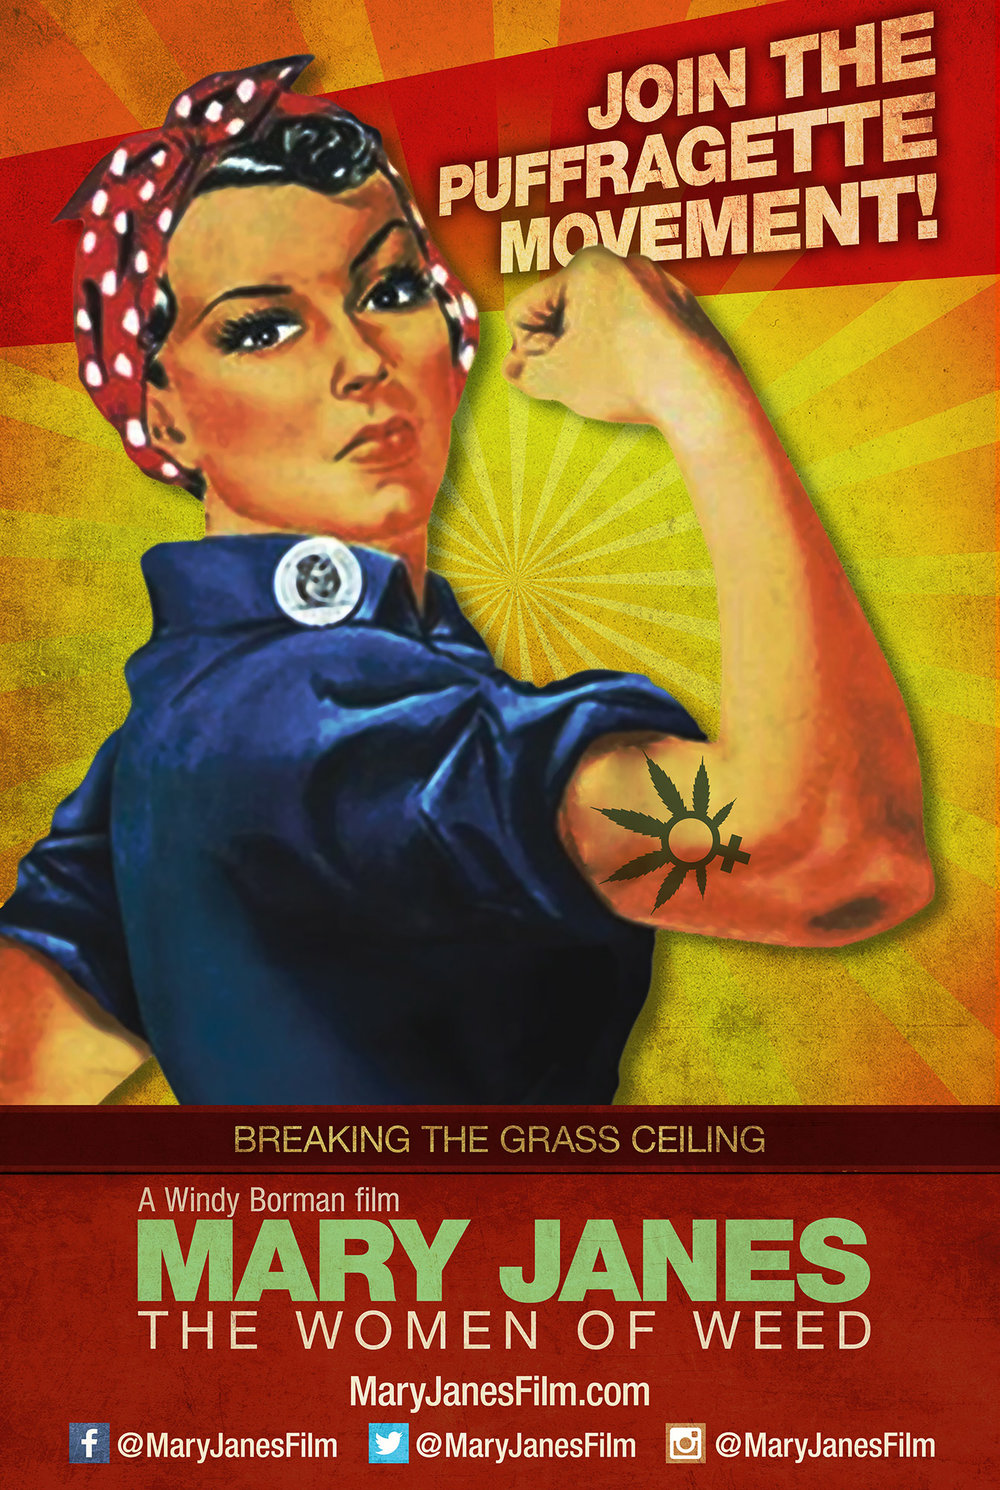 MARY JANES WOMEN OF WEED POSTER